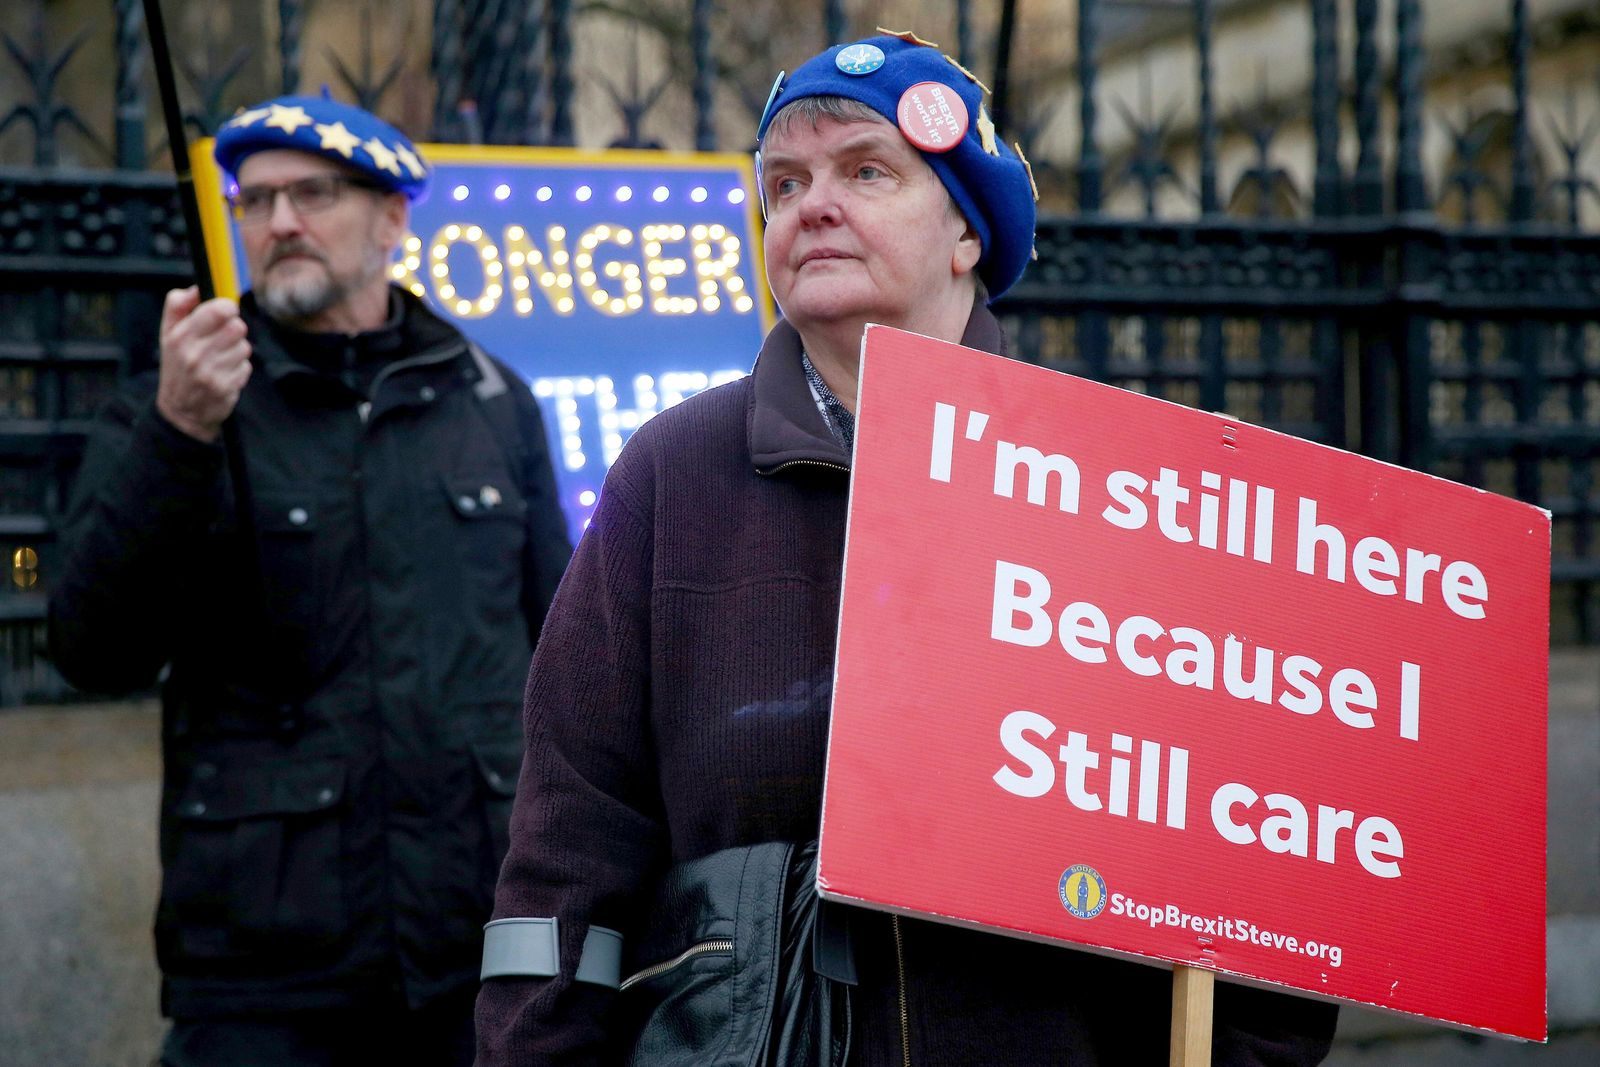 Anti-Brexit protestors stand outside the Houses of Parliament in London, Wednesday, Jan. 22, 2020. Britain are scheduled to leave the European Union on Jan. 31, 2020. (Hollie Adams via AP)